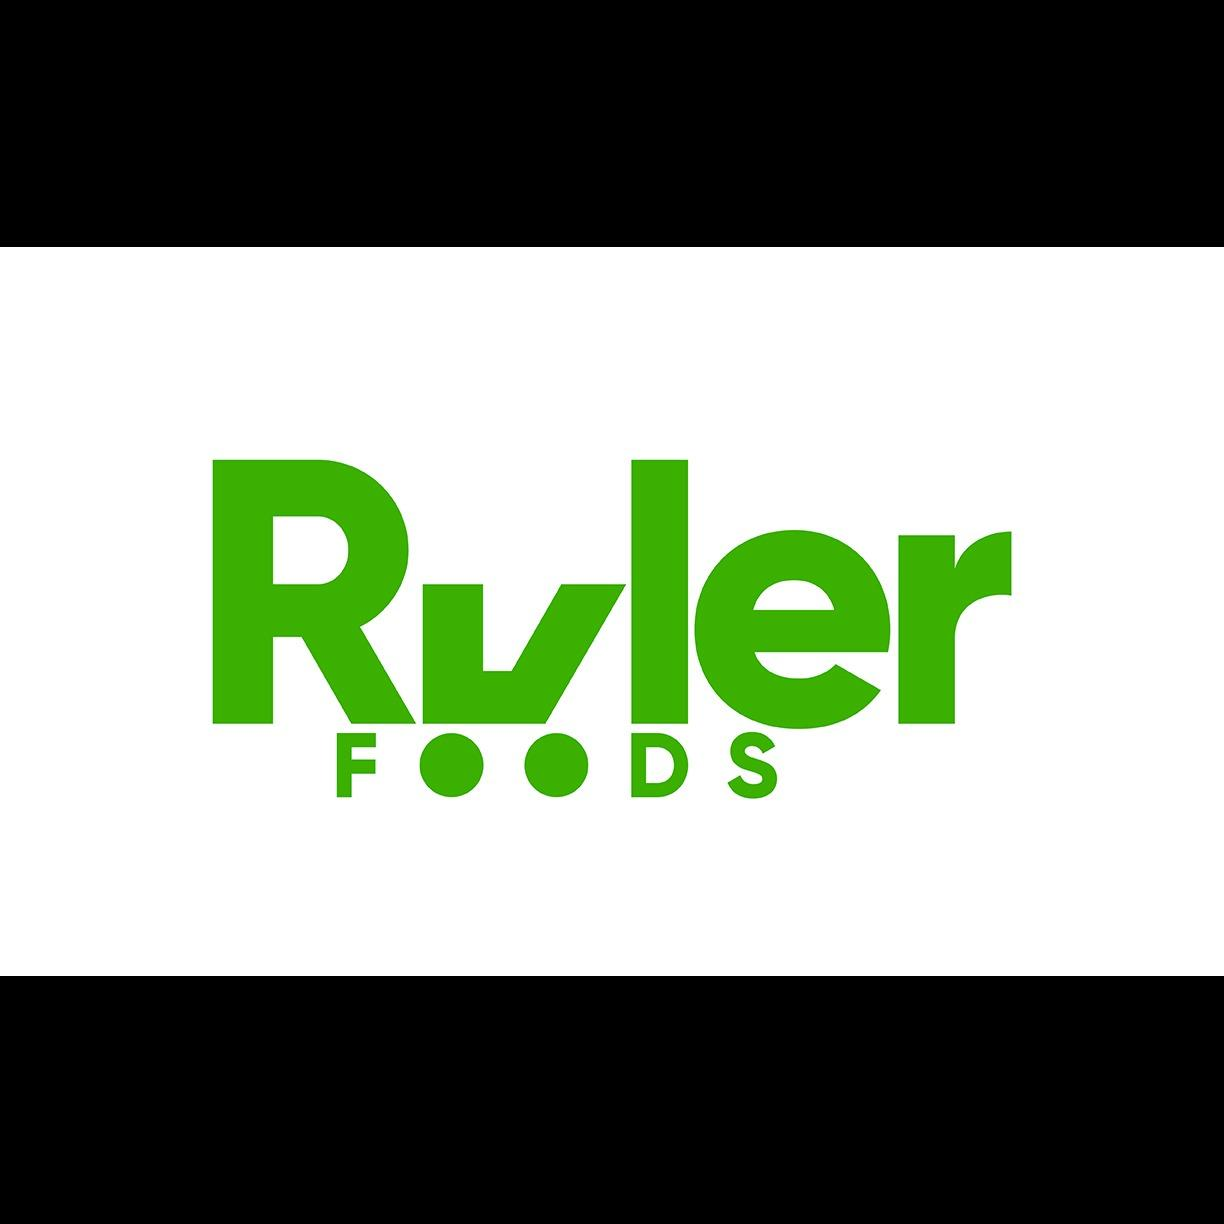 Ruler Foods image 5